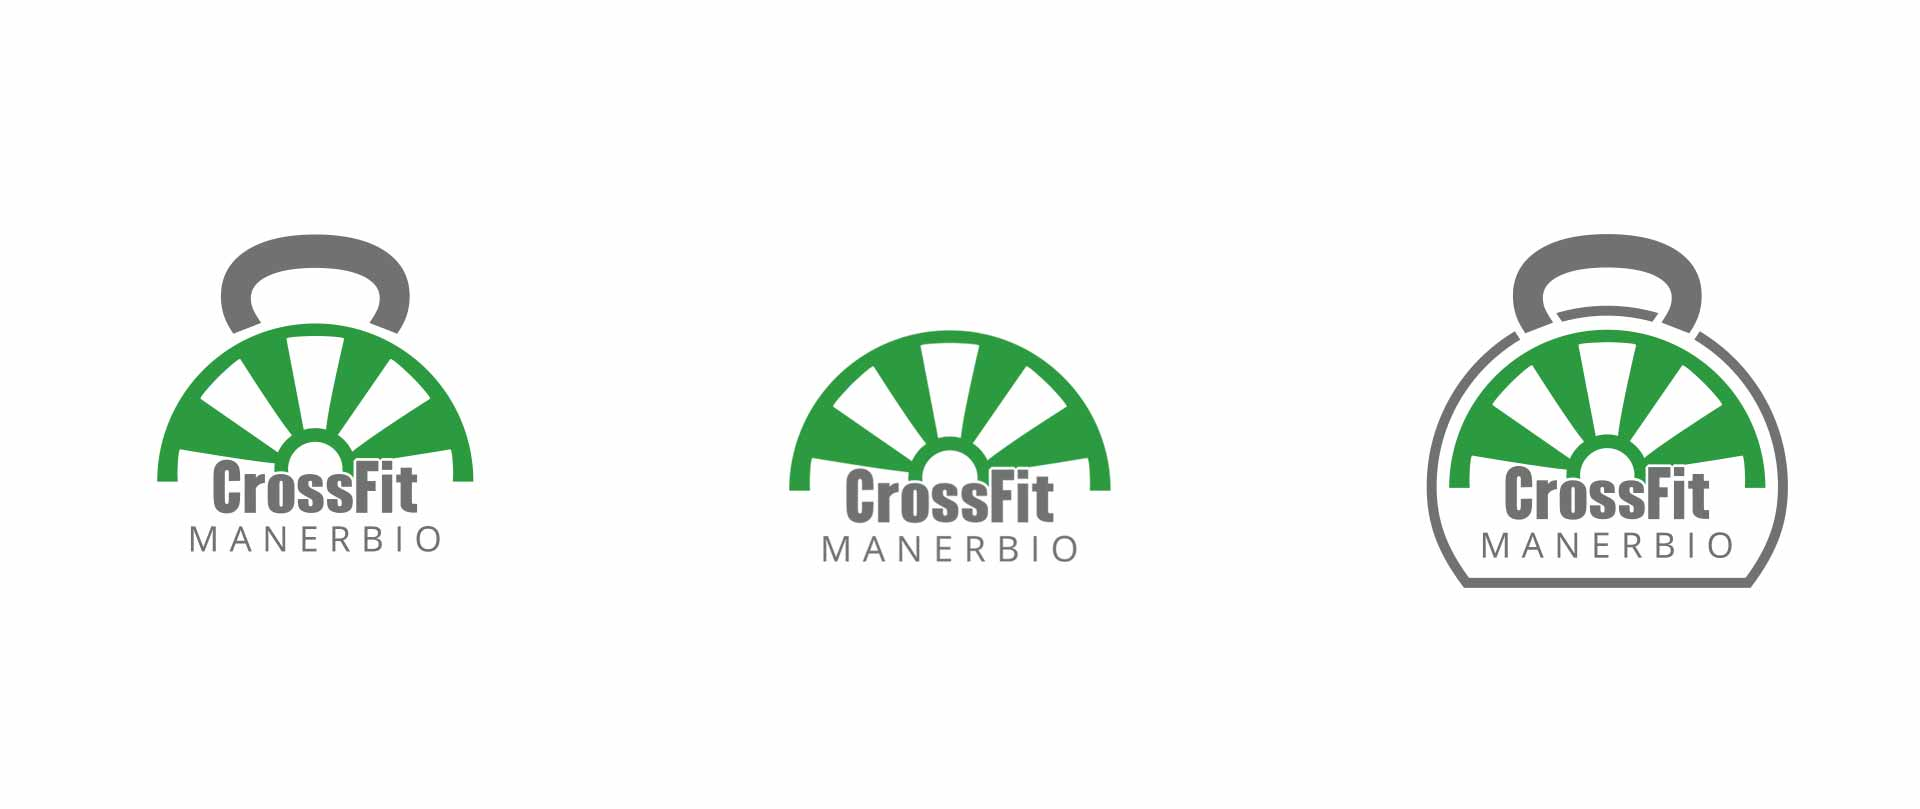 logo crossfit design